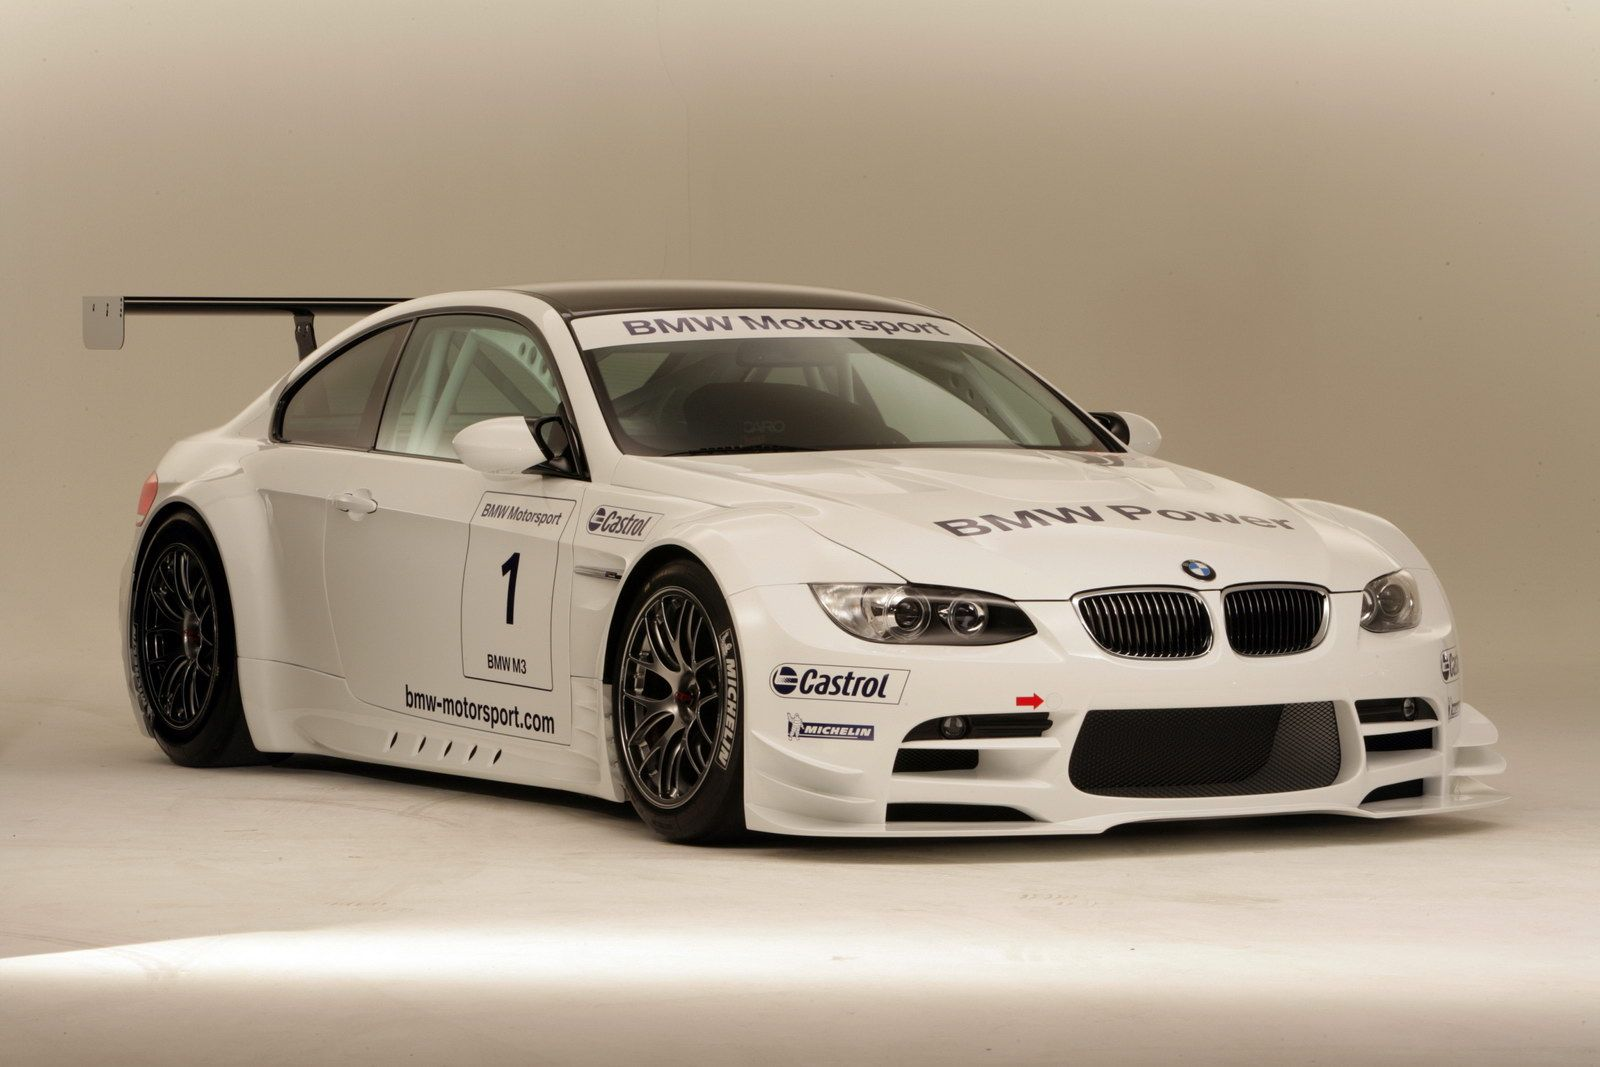 M3 pics bmw m3 car specifications brand bmw model bmw m3 2dr coupe edition 4